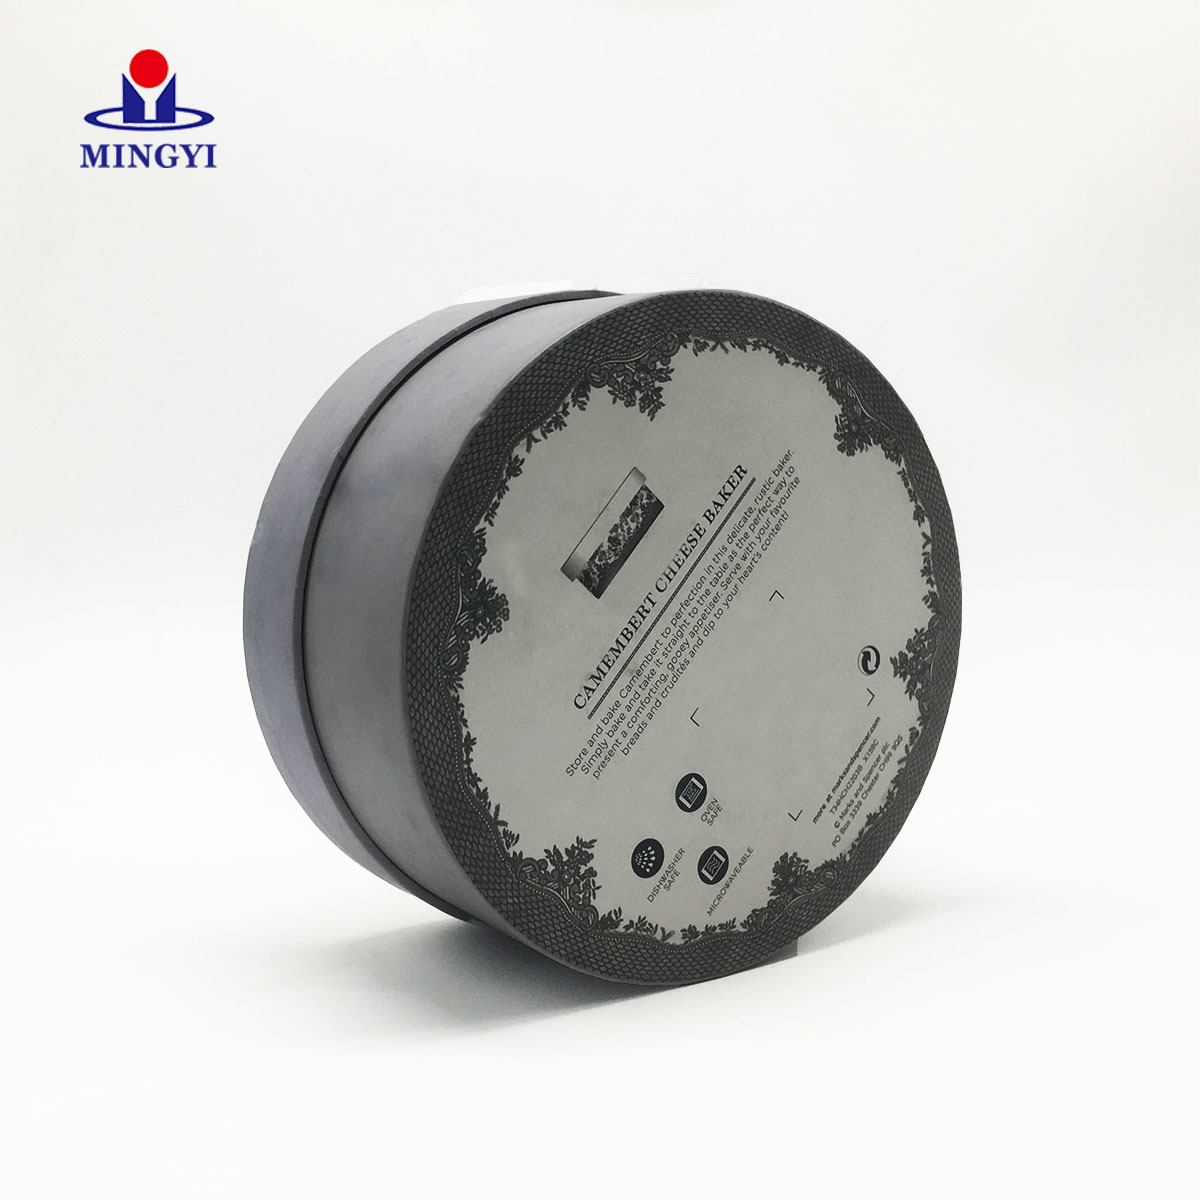 Luxury cardboard Circle cake gift box packaging with lid